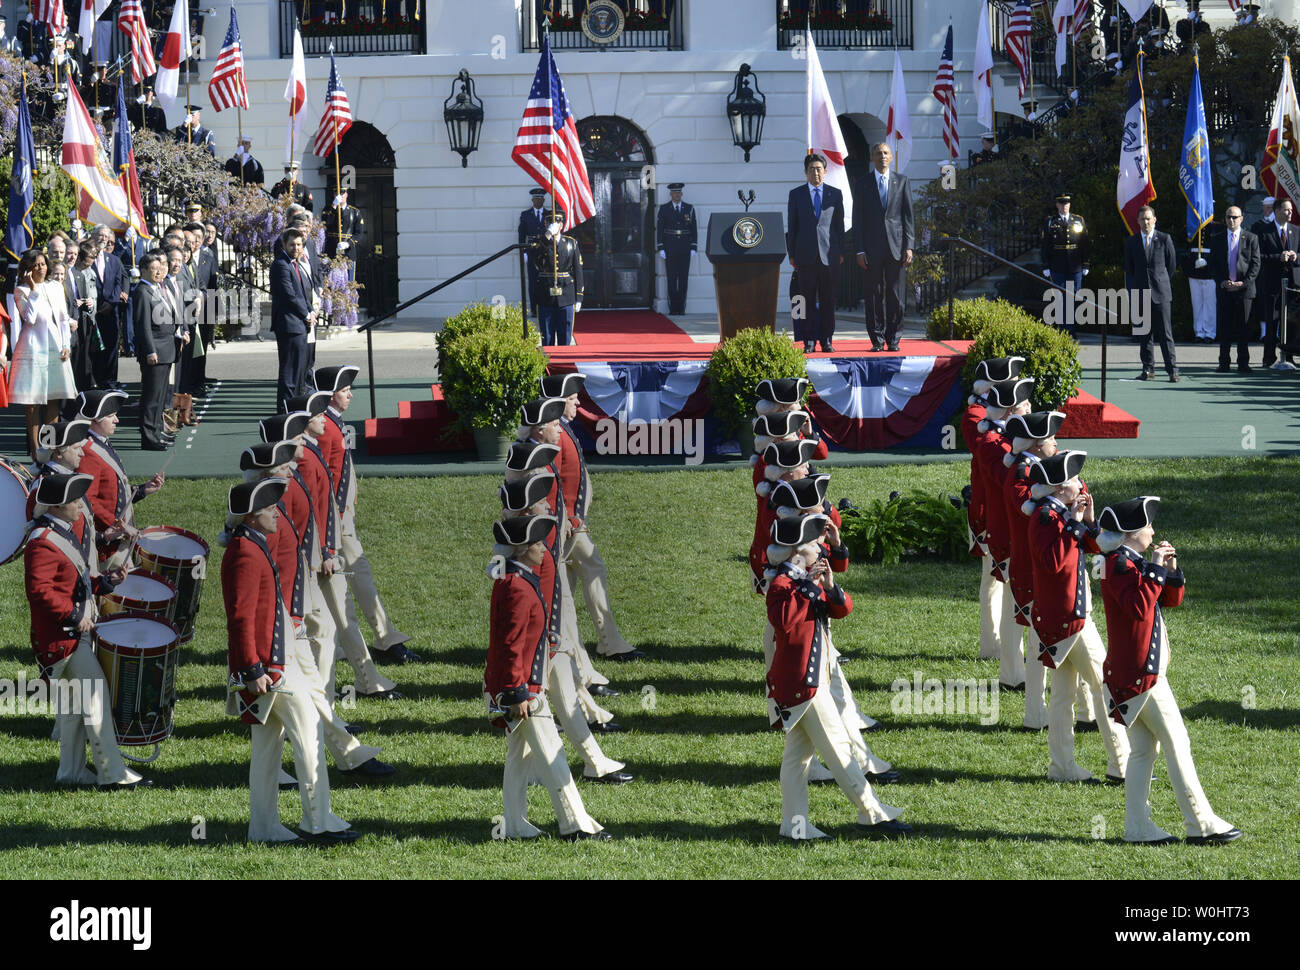 U.S. President Barack Obama and Japanese Prime Minister Shinzo Abe (on riser, background) watch as Colonial-era fife and bugle corps pass in review  during a welcoming ceremony on the South Lawn of the White House, April 28, 2015, in Washington, DC.        Photo by Mike Theiler/UPI - Stock Image